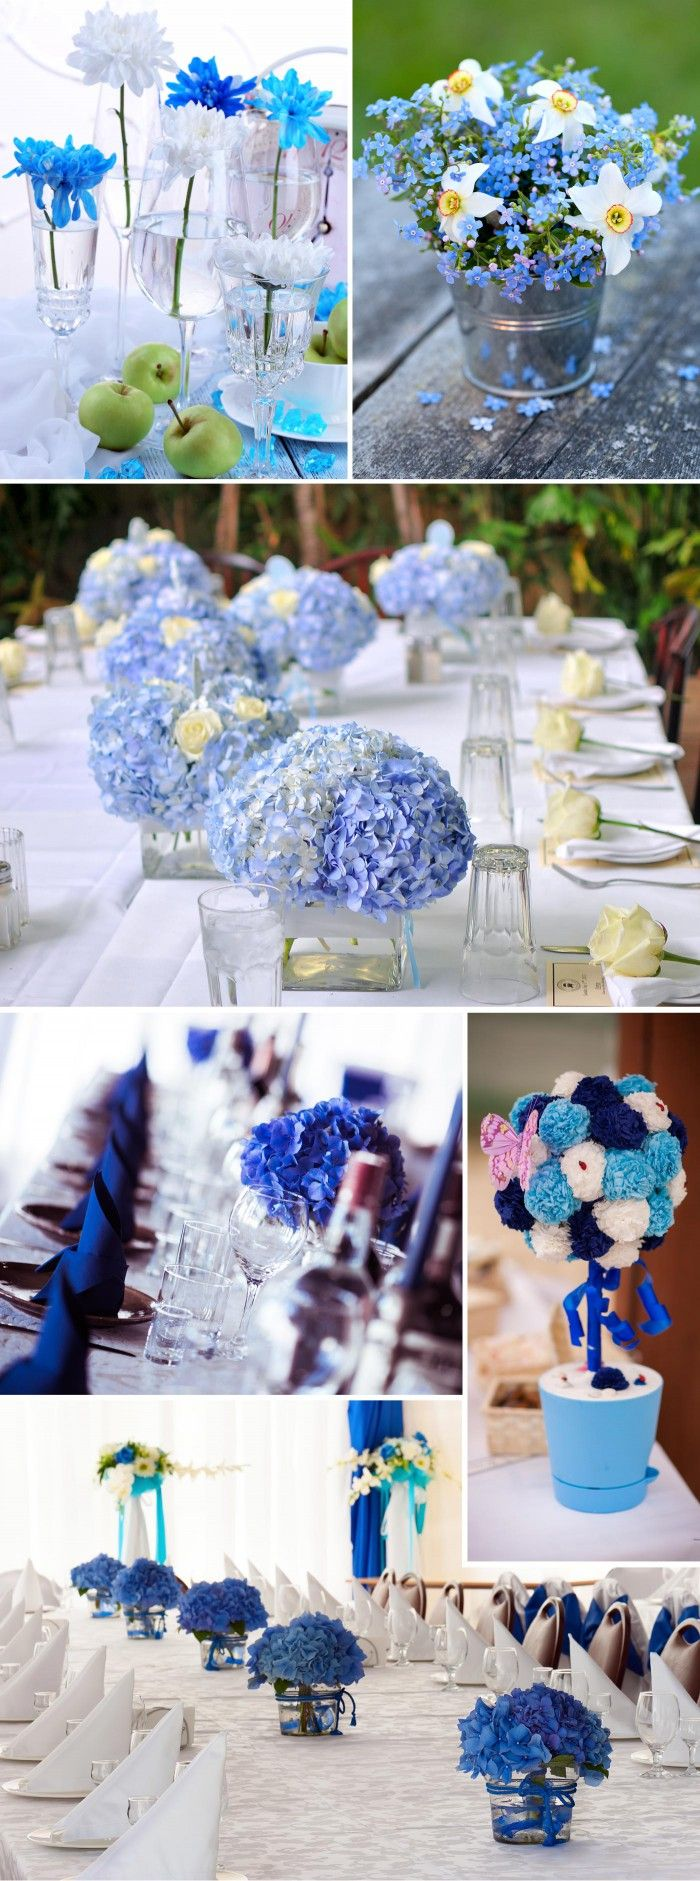 Tischdeko In Turkis Blau Boy Shower Wedding Flowers Wedding